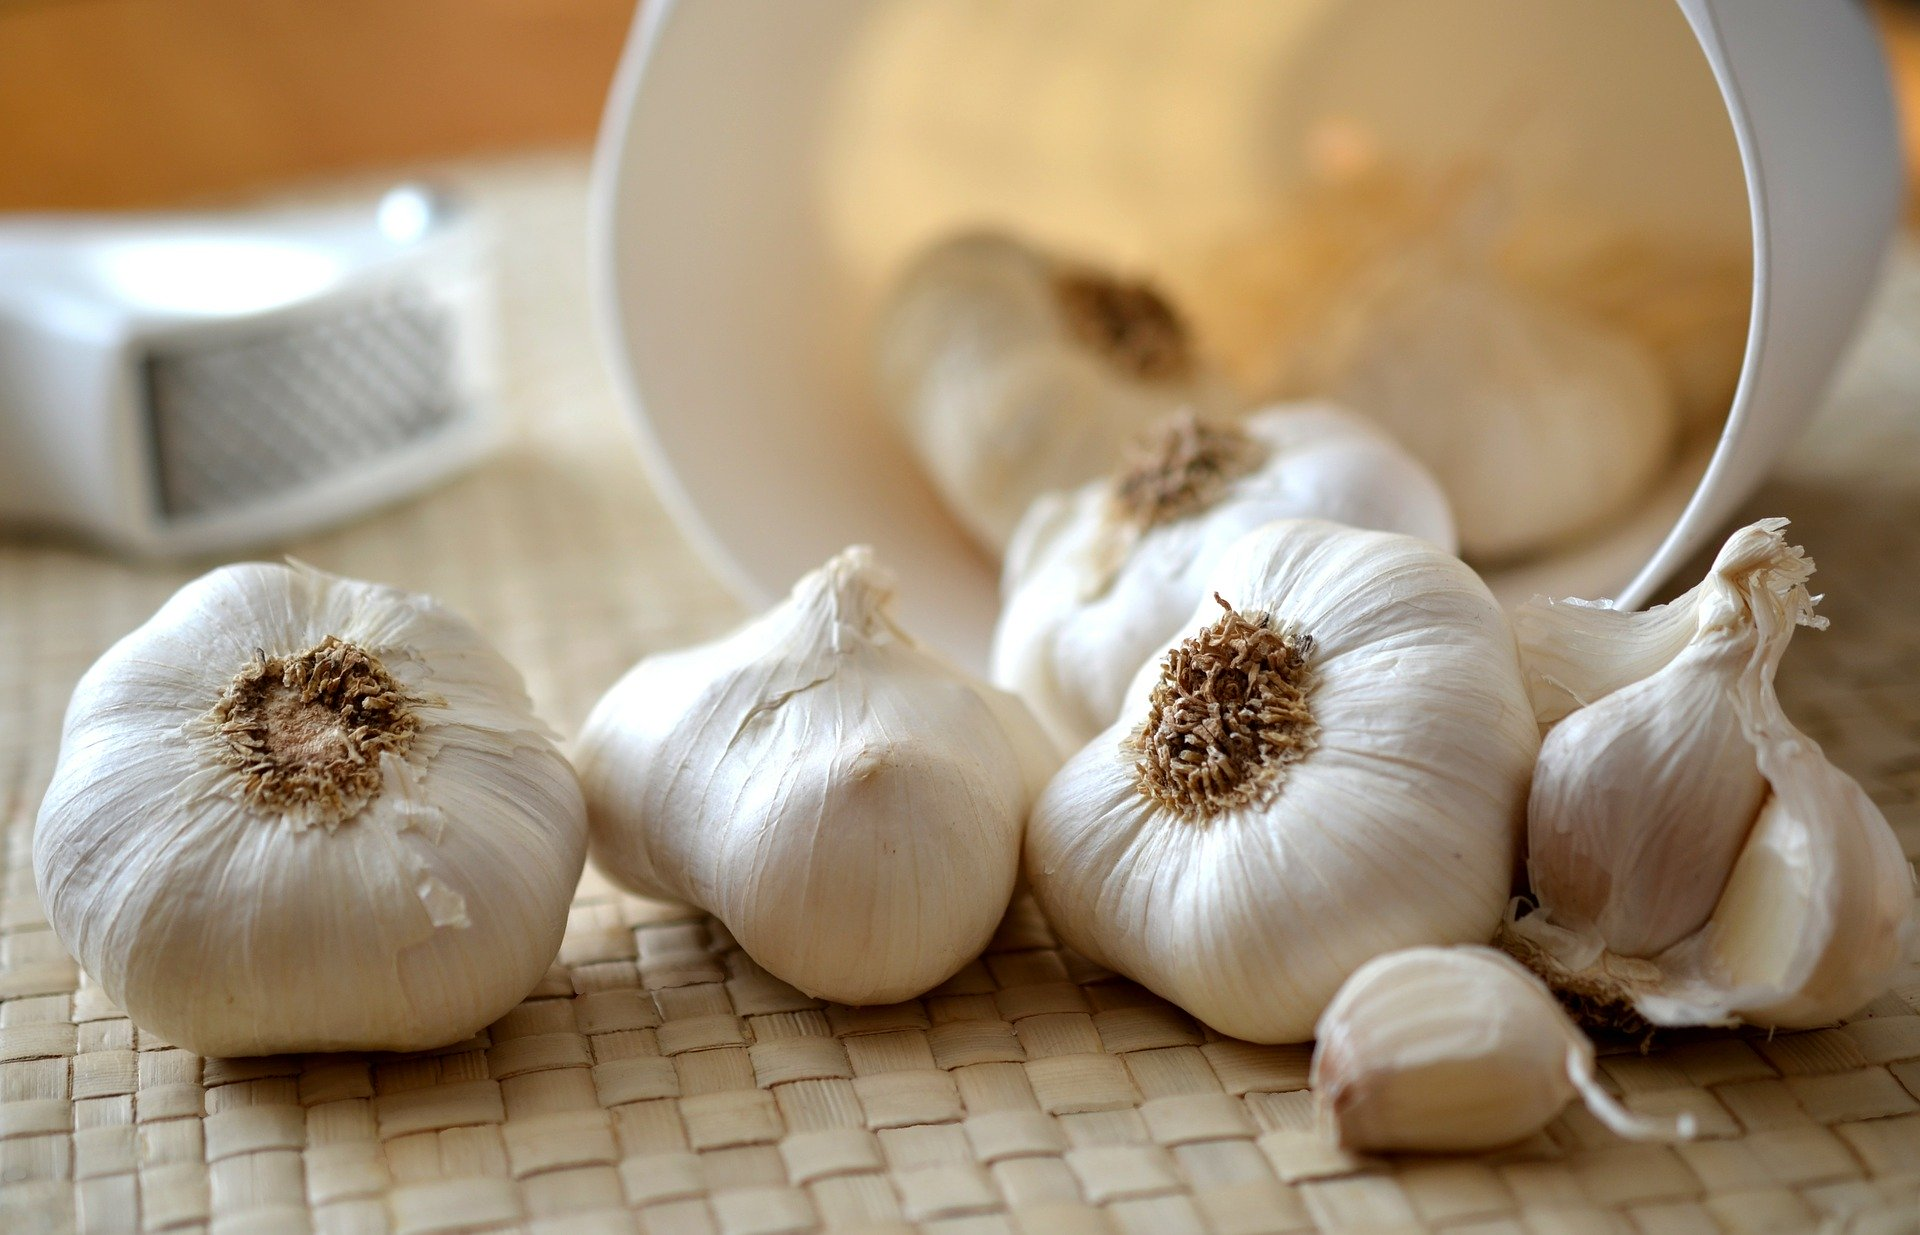 planting garlic, Planting garlic: how to grow it, Best Garden, Home And DIY Tips